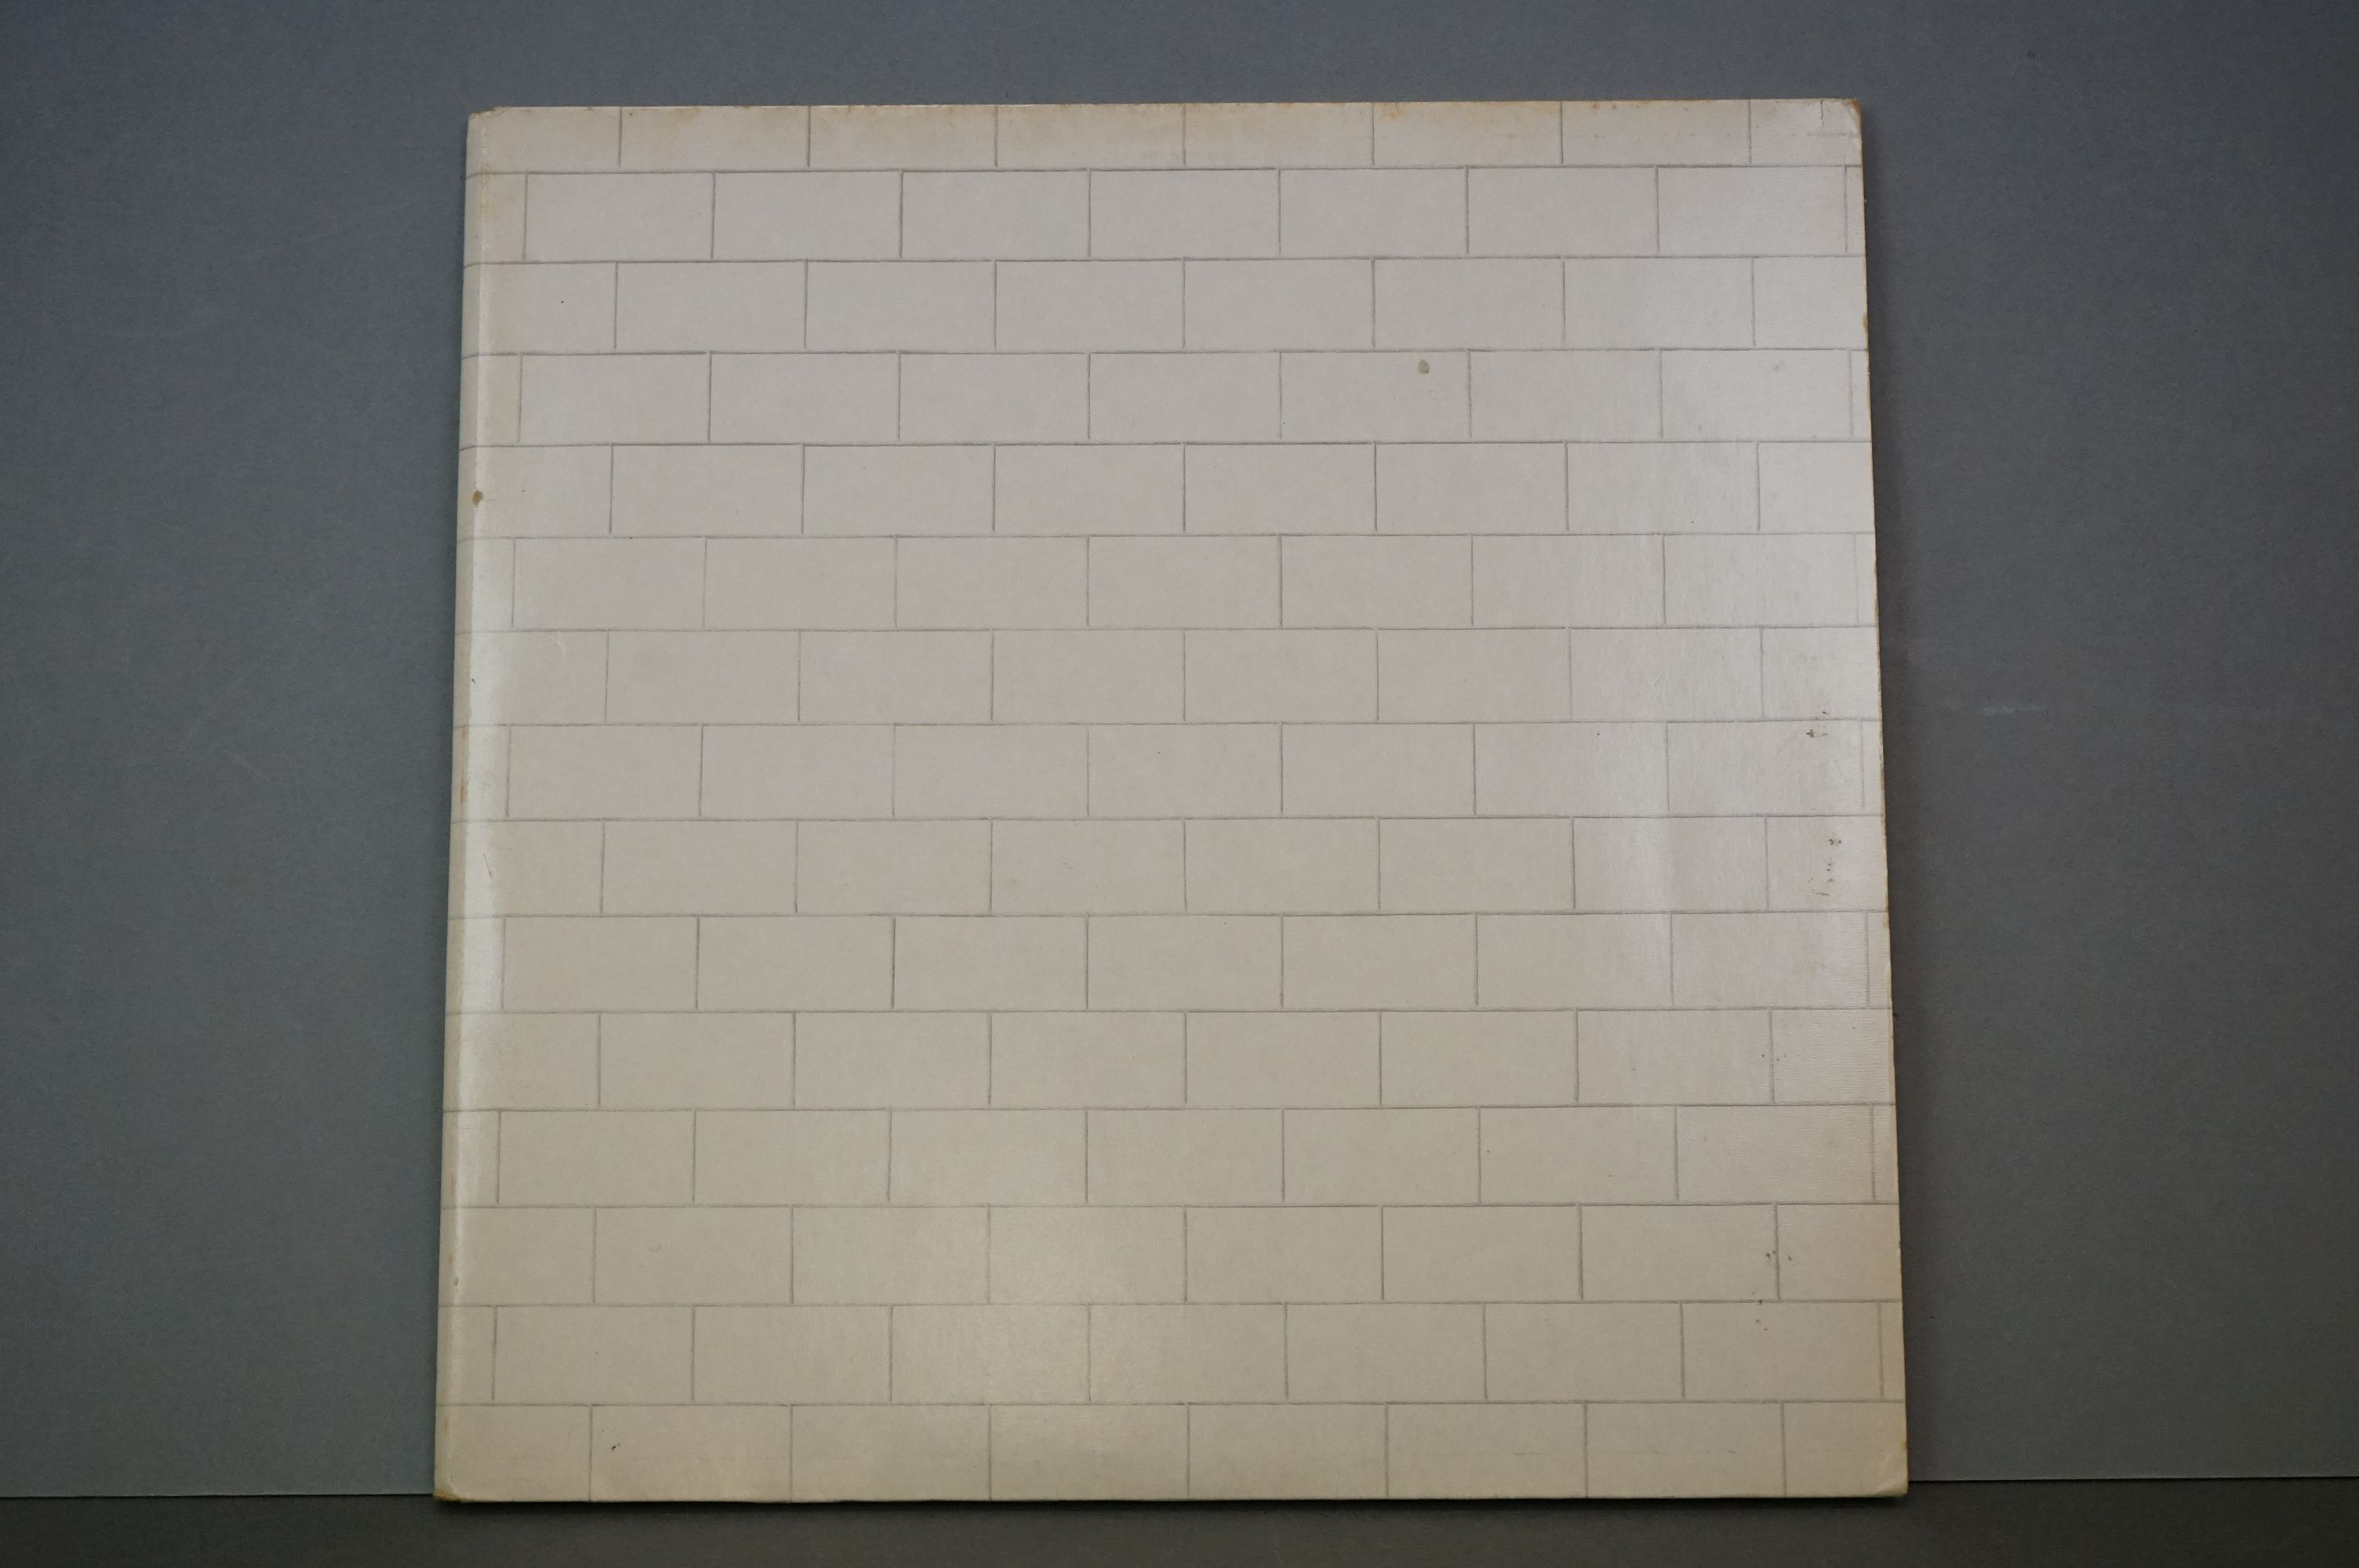 Vinyl - Pink Floyd The Wall 1A1S863410 Dutch pressing, mismatched inners, side 1 & 2 UK rounded